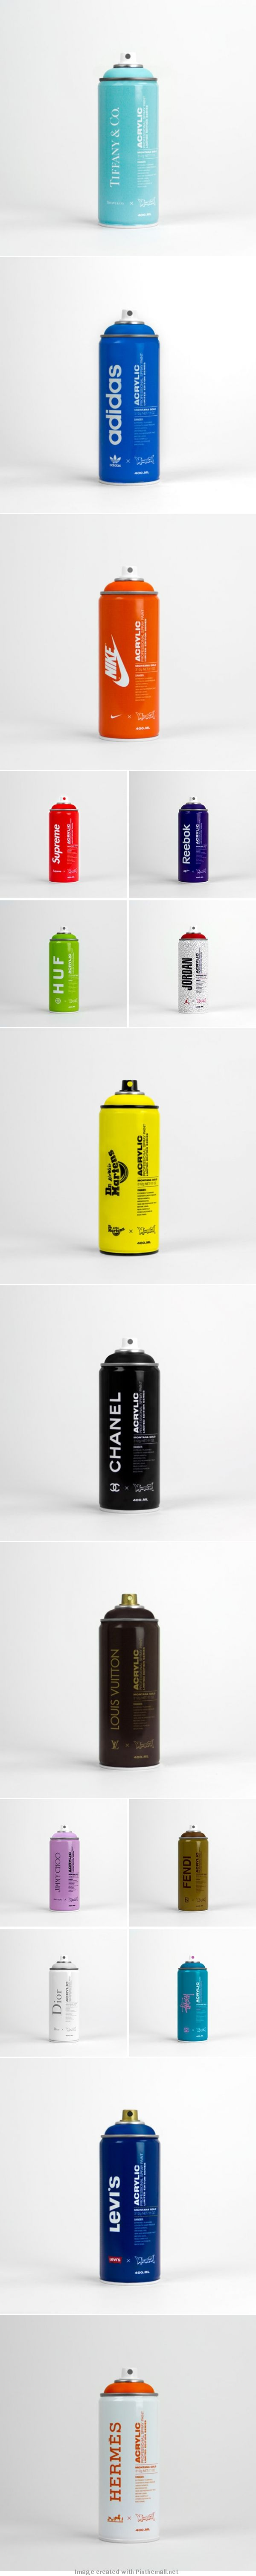 Assorted branded spray paint #packaging PD